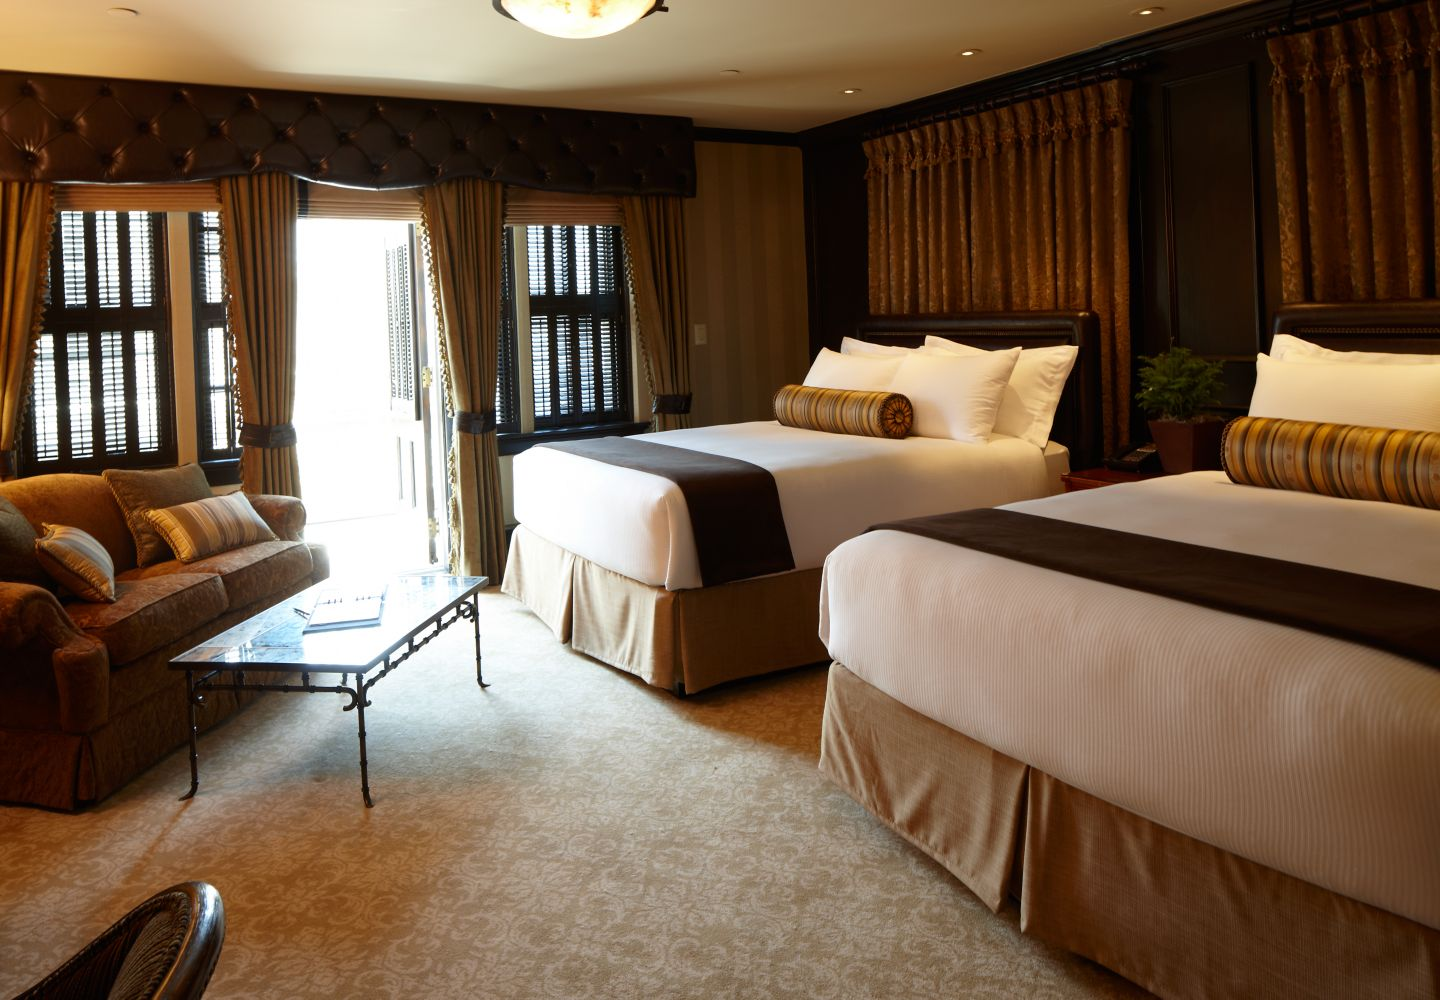 This is the Deluxe Room at the Carriage House